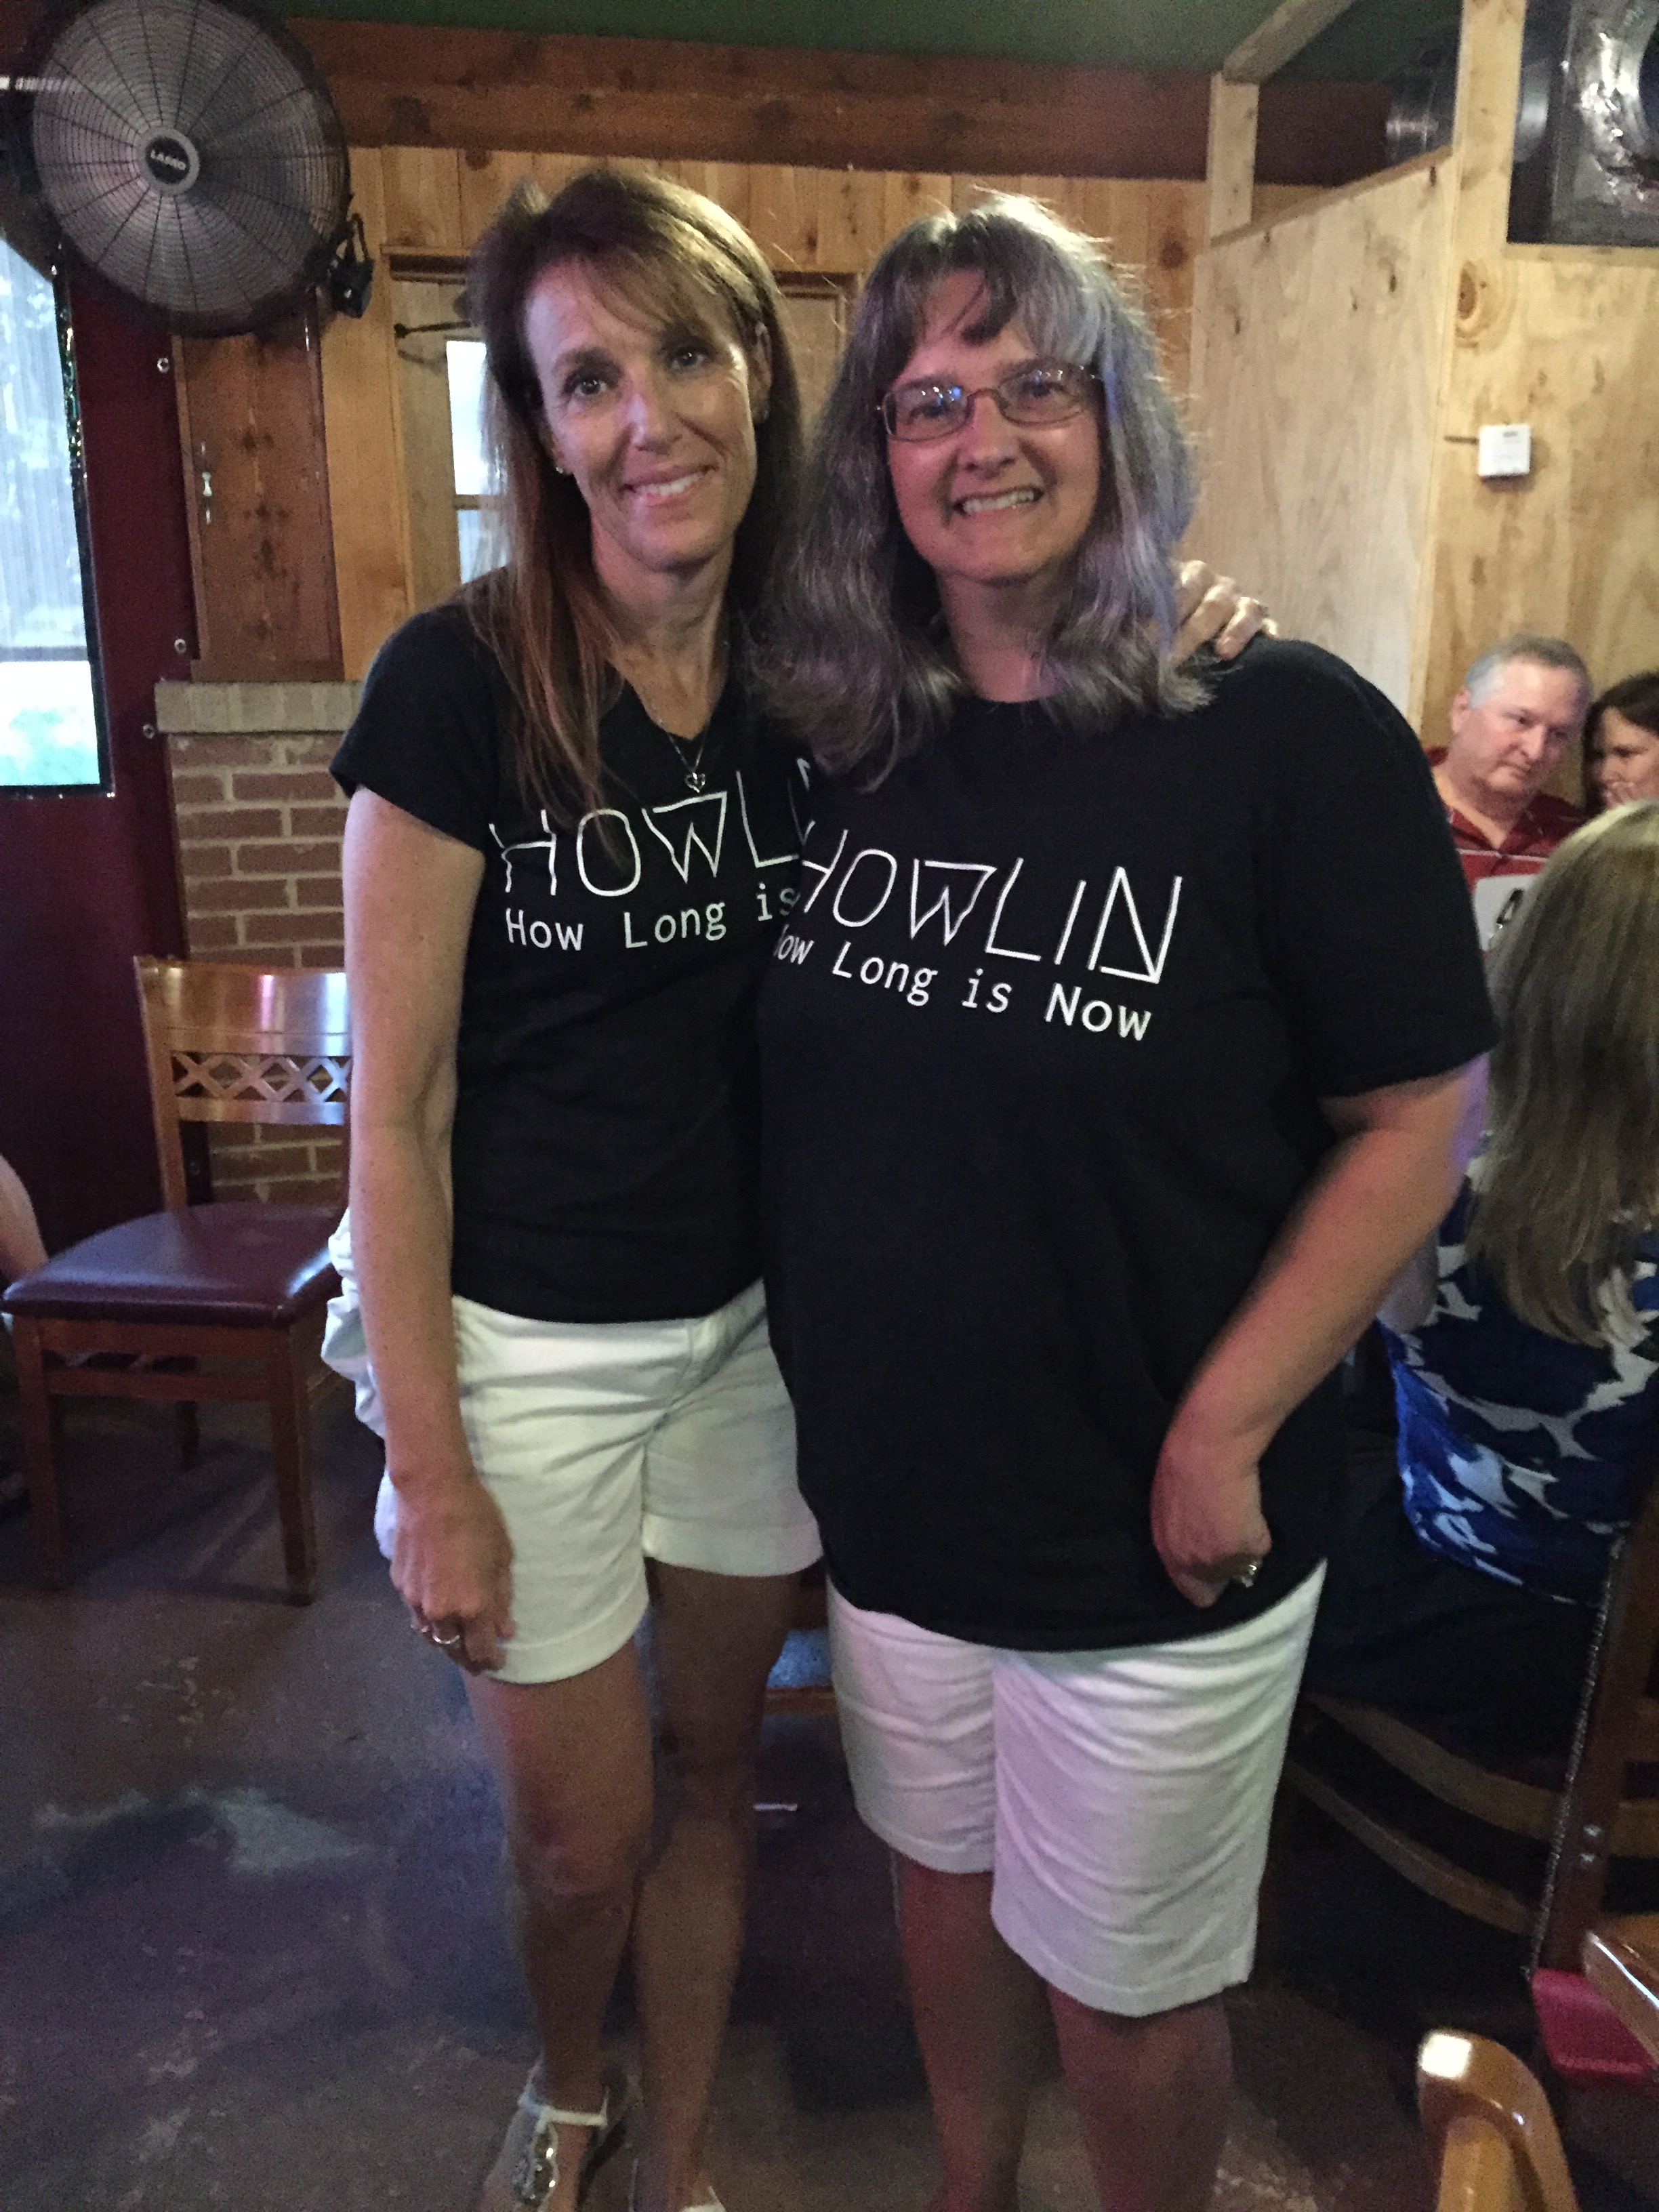 The wives of HowLiN